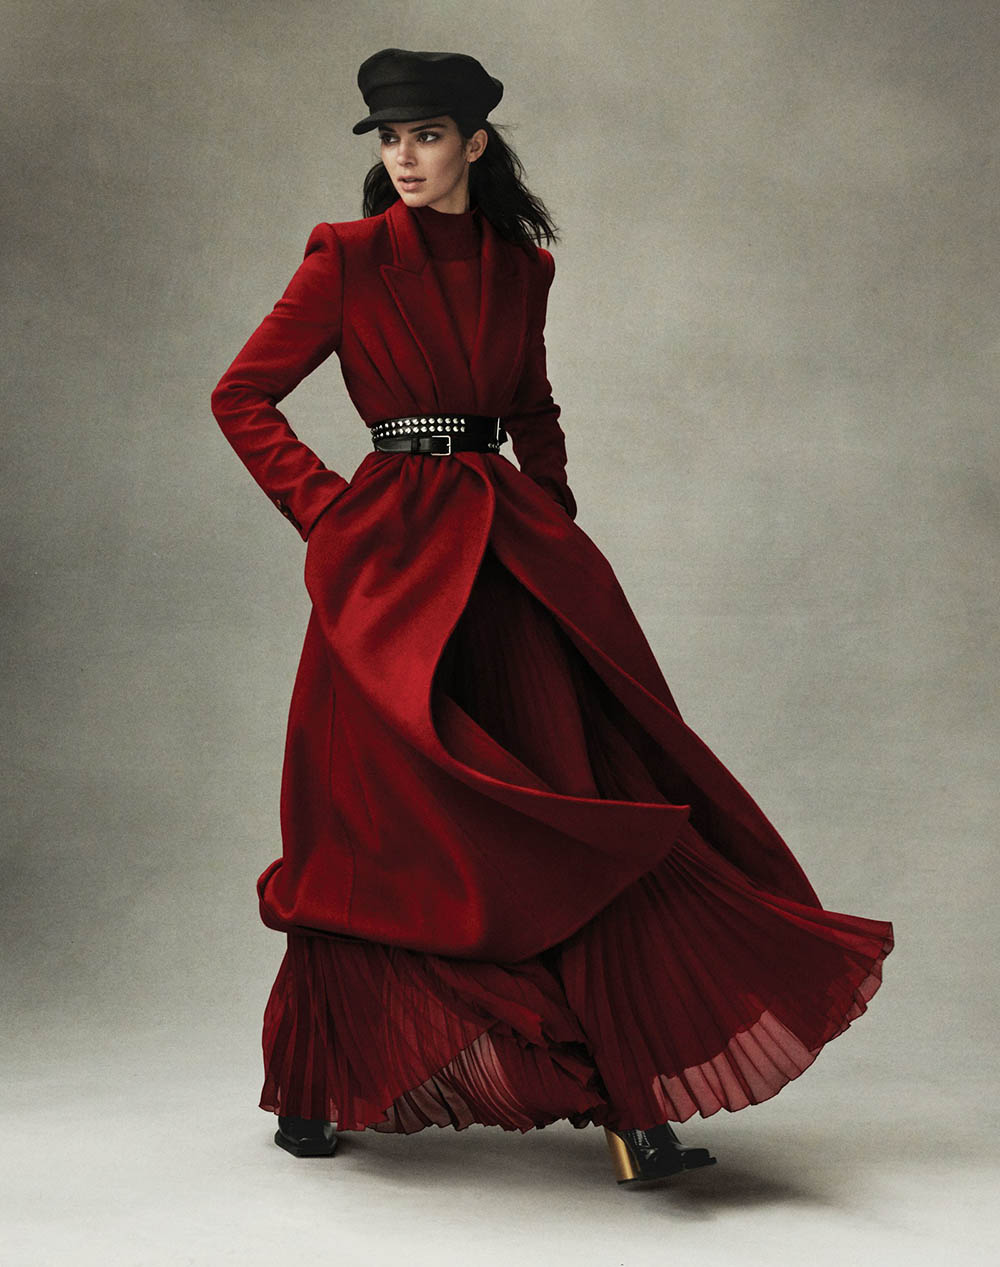 Kendall Jenner by Daniel Jackson for Vogue US November 2019